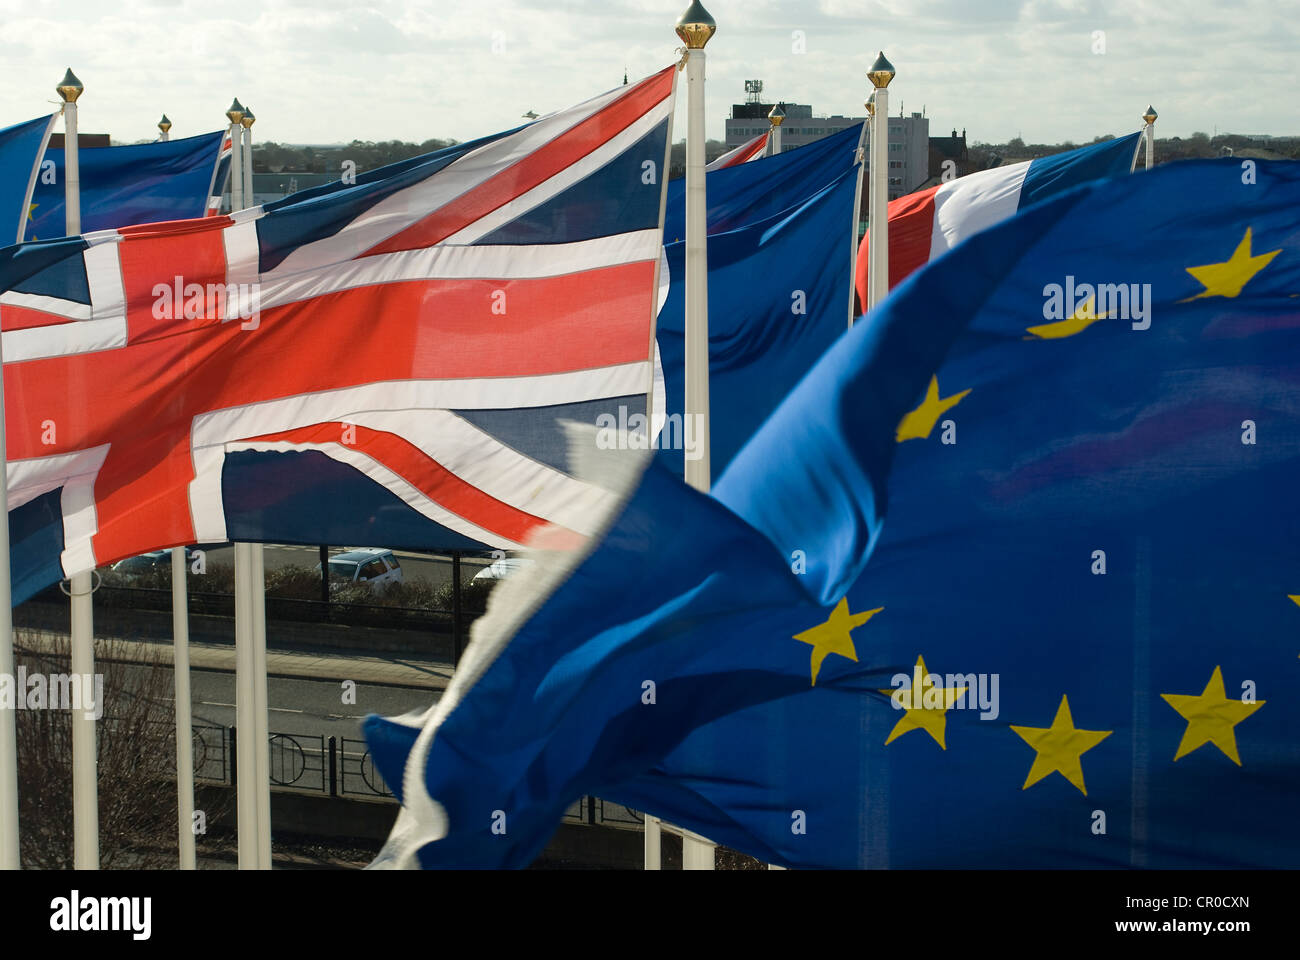 Union Jack and European Union flags flying on numerous flag poles - Stock Image